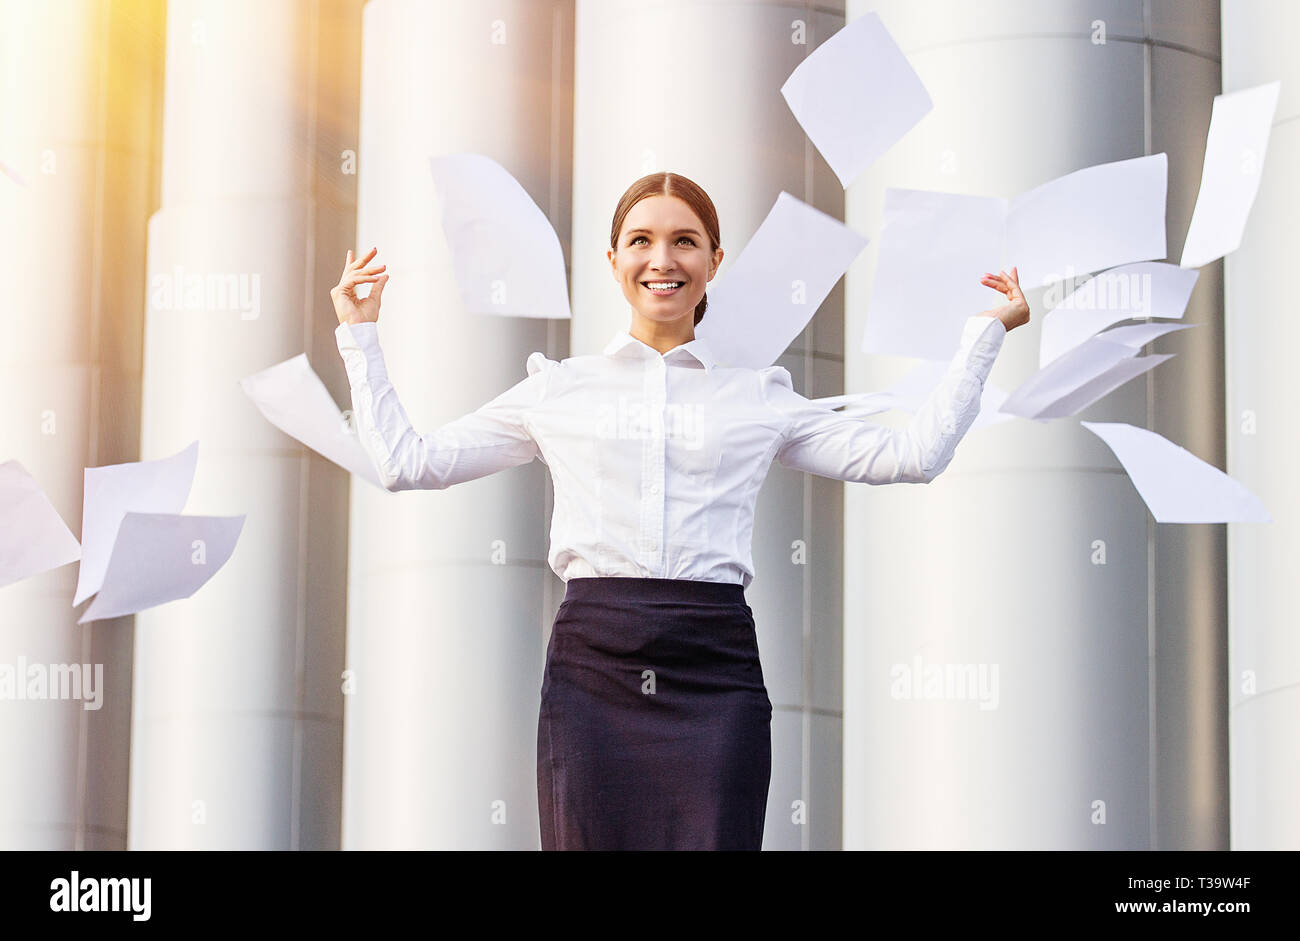 Celebrating success. Portrait of young and beautiful business woman in skirt and shirt throwing up papers and smiling while standing against white pil - Stock Image